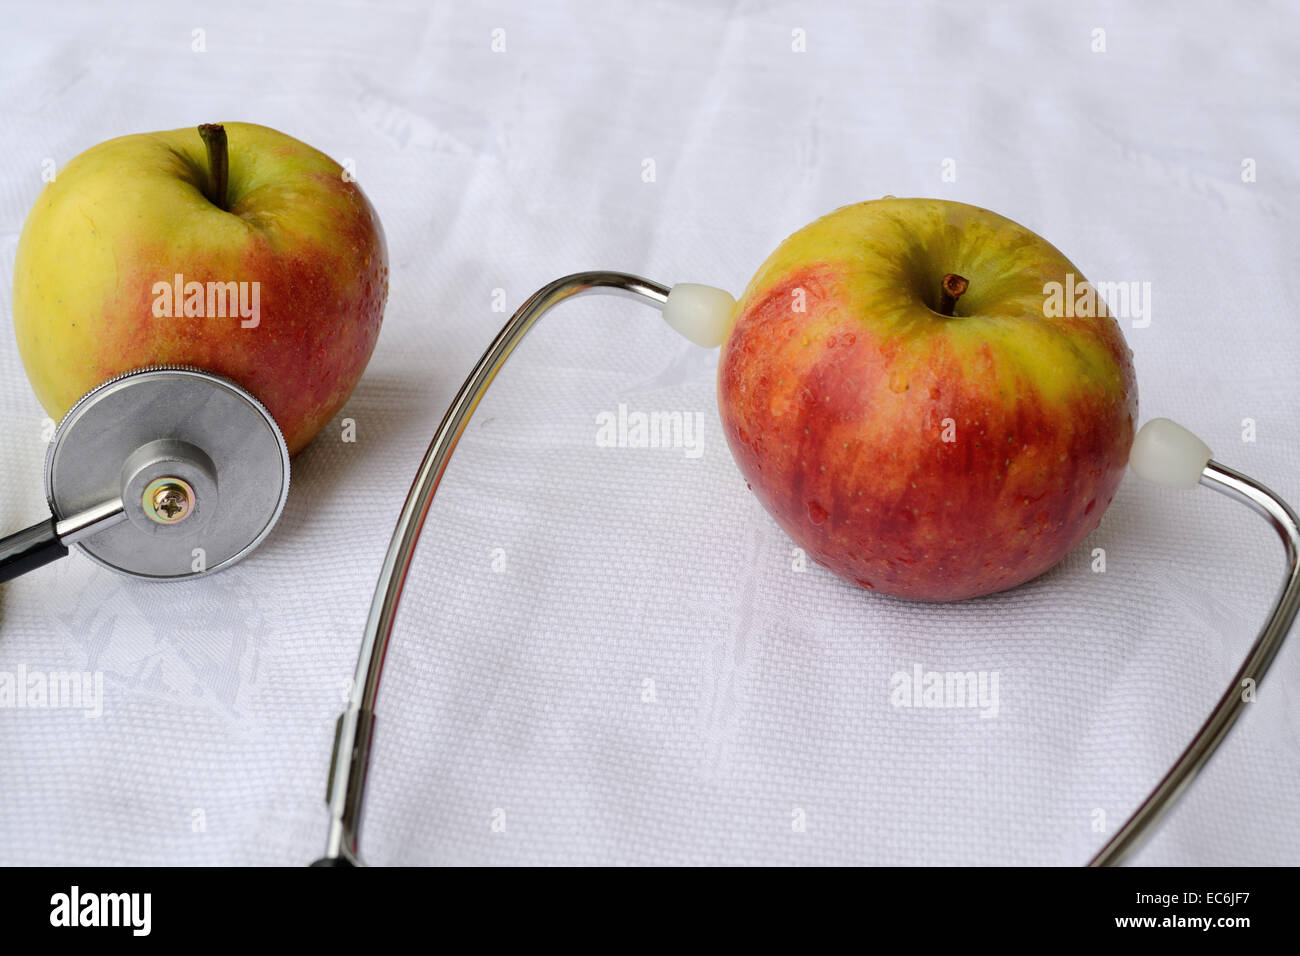 exempted apples with stethoscope - Stock Image